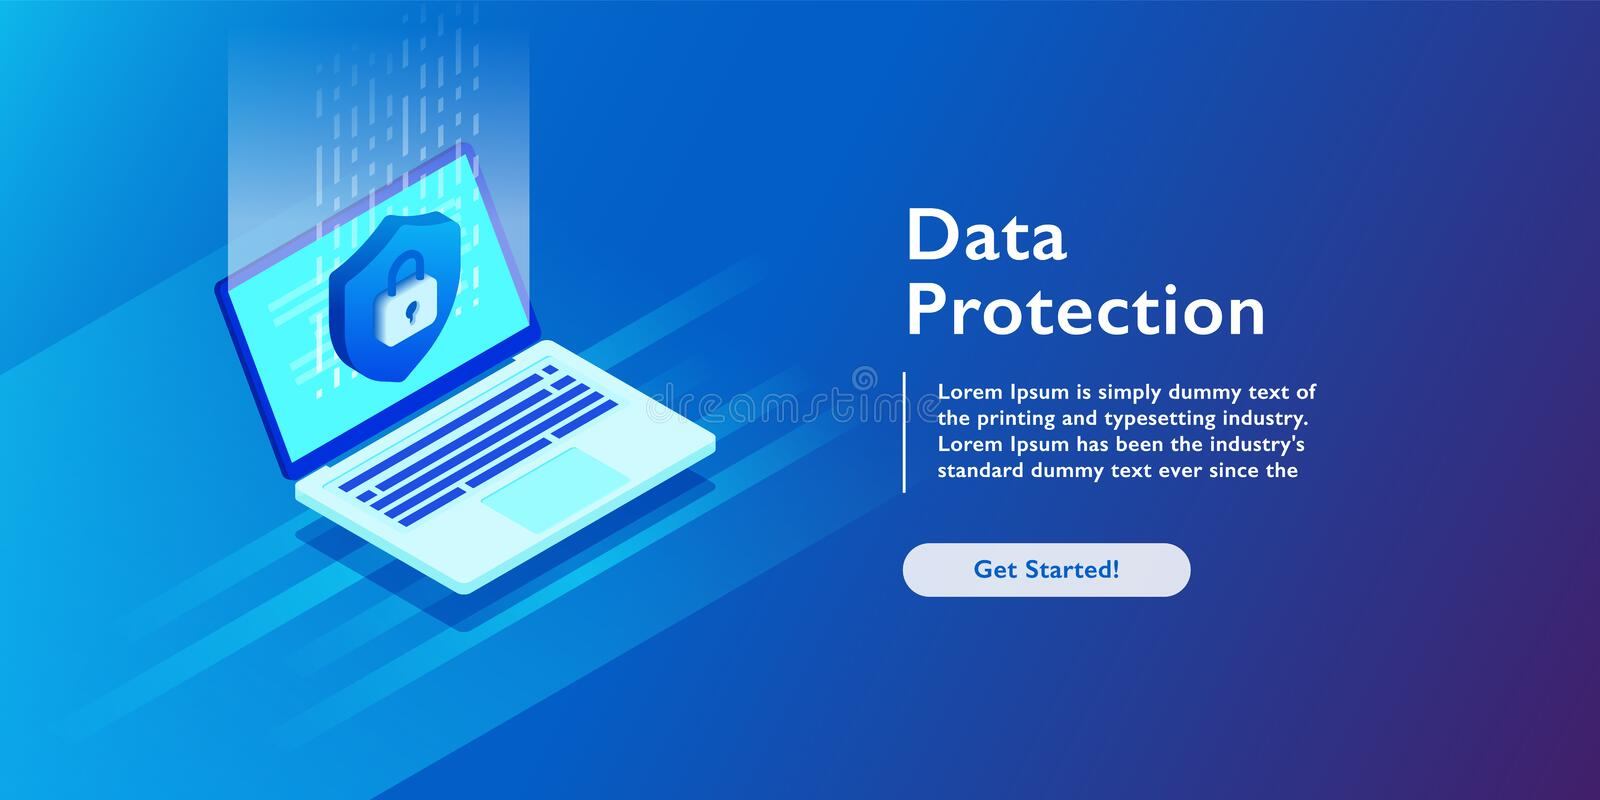 Security Data Protection Information Lock digital technology isometric vector illustration royalty free illustration